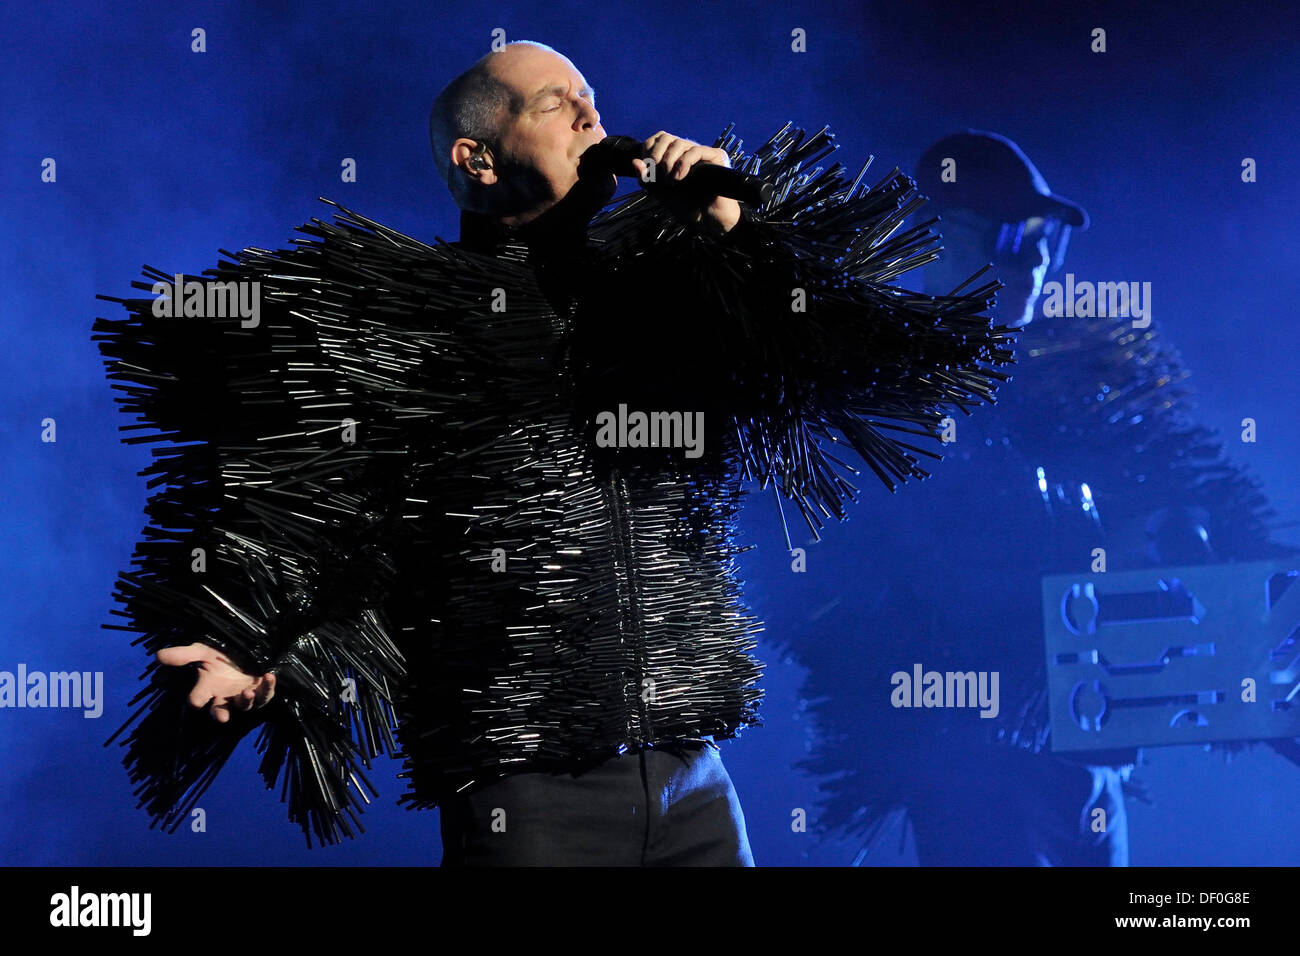 Toronto, Canada. 25th Sep 2013. English electronic pop duo, Pet Shop Boys, performs at Toronto's Sony Centre for the Performing Arts during their world wide Electric Tour. In picture, Neil Tennant. © EXImages/Alamy Live News - Stock Image